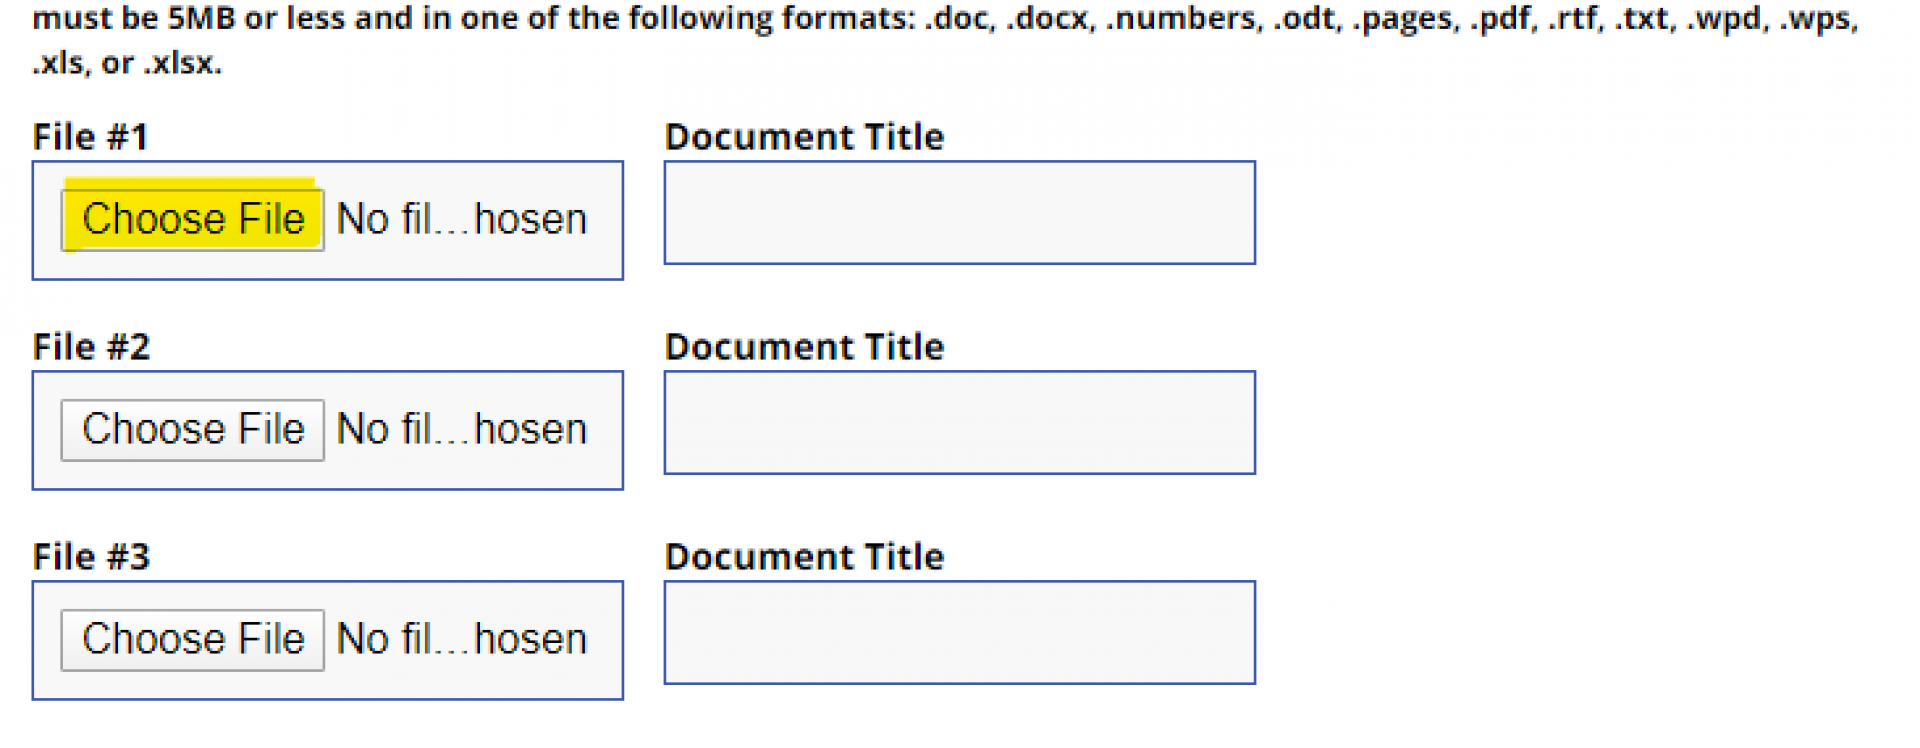 An image of where to upload Forms in the Appointment Form.